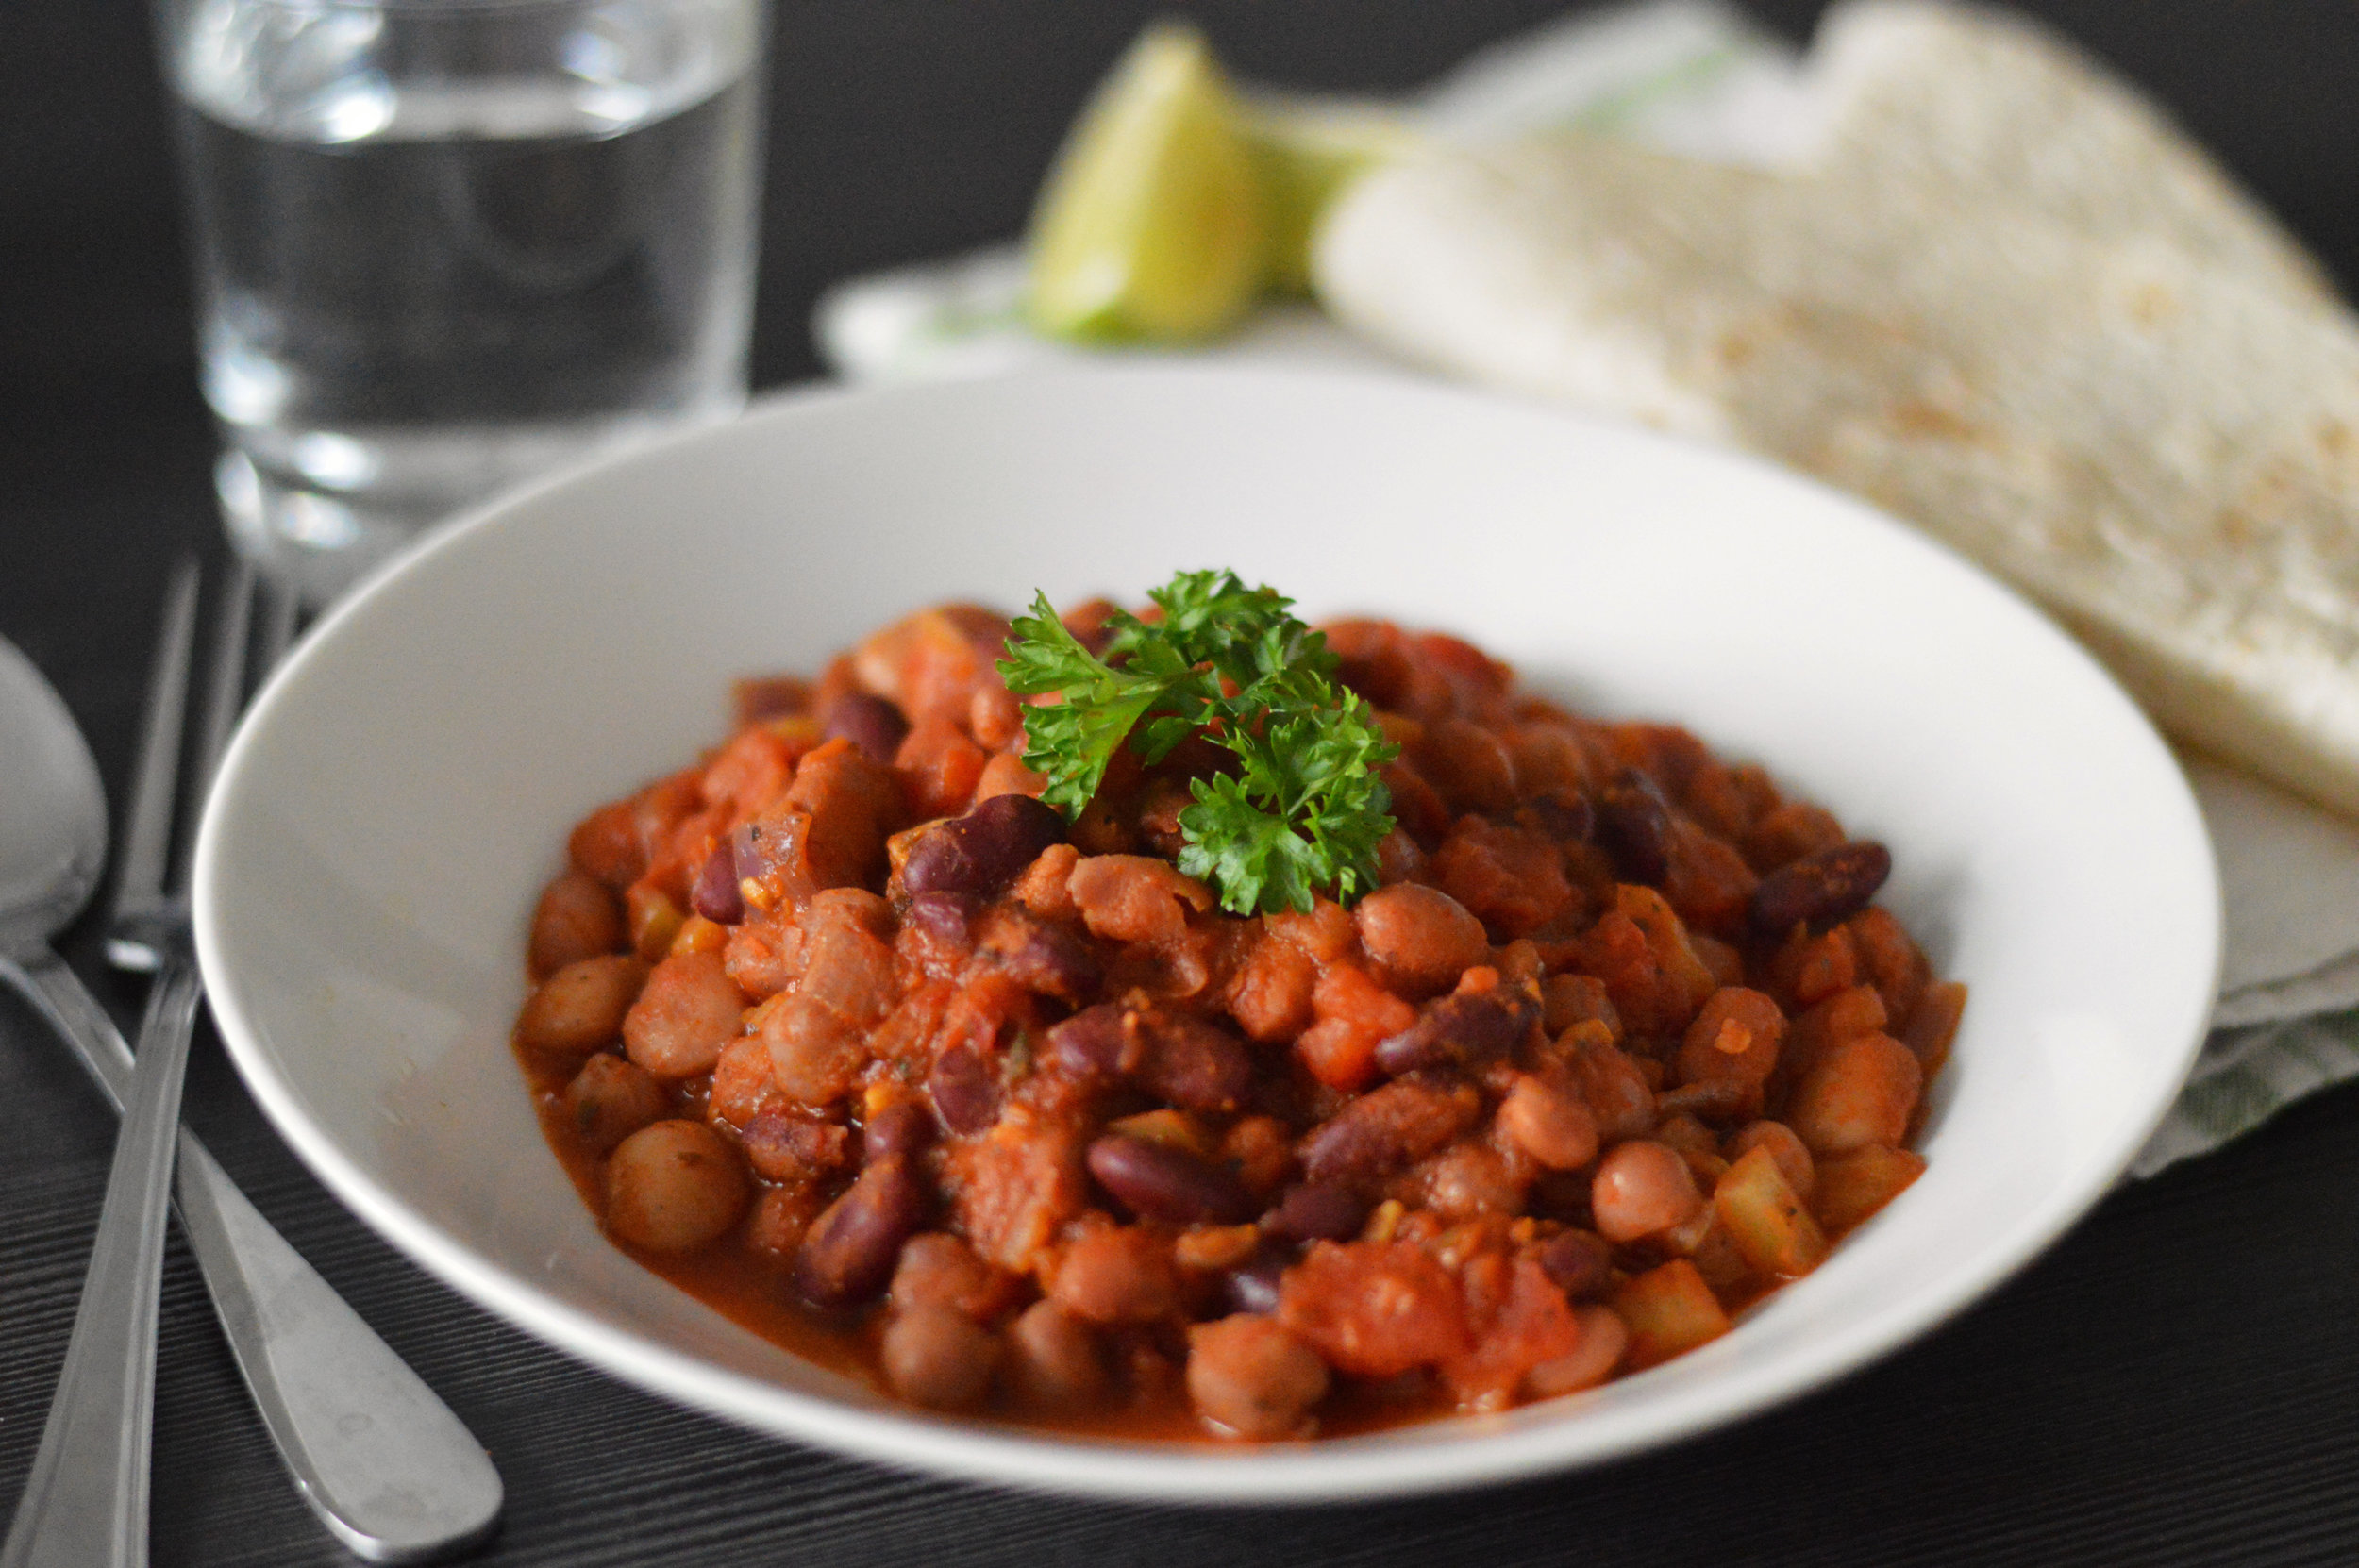 Mixed Bean Chilli - This vegan bean chilli recipe plays with Mexican flavours to create a warm bowl of aromatic, smokey and flavourism bowl of chilli.